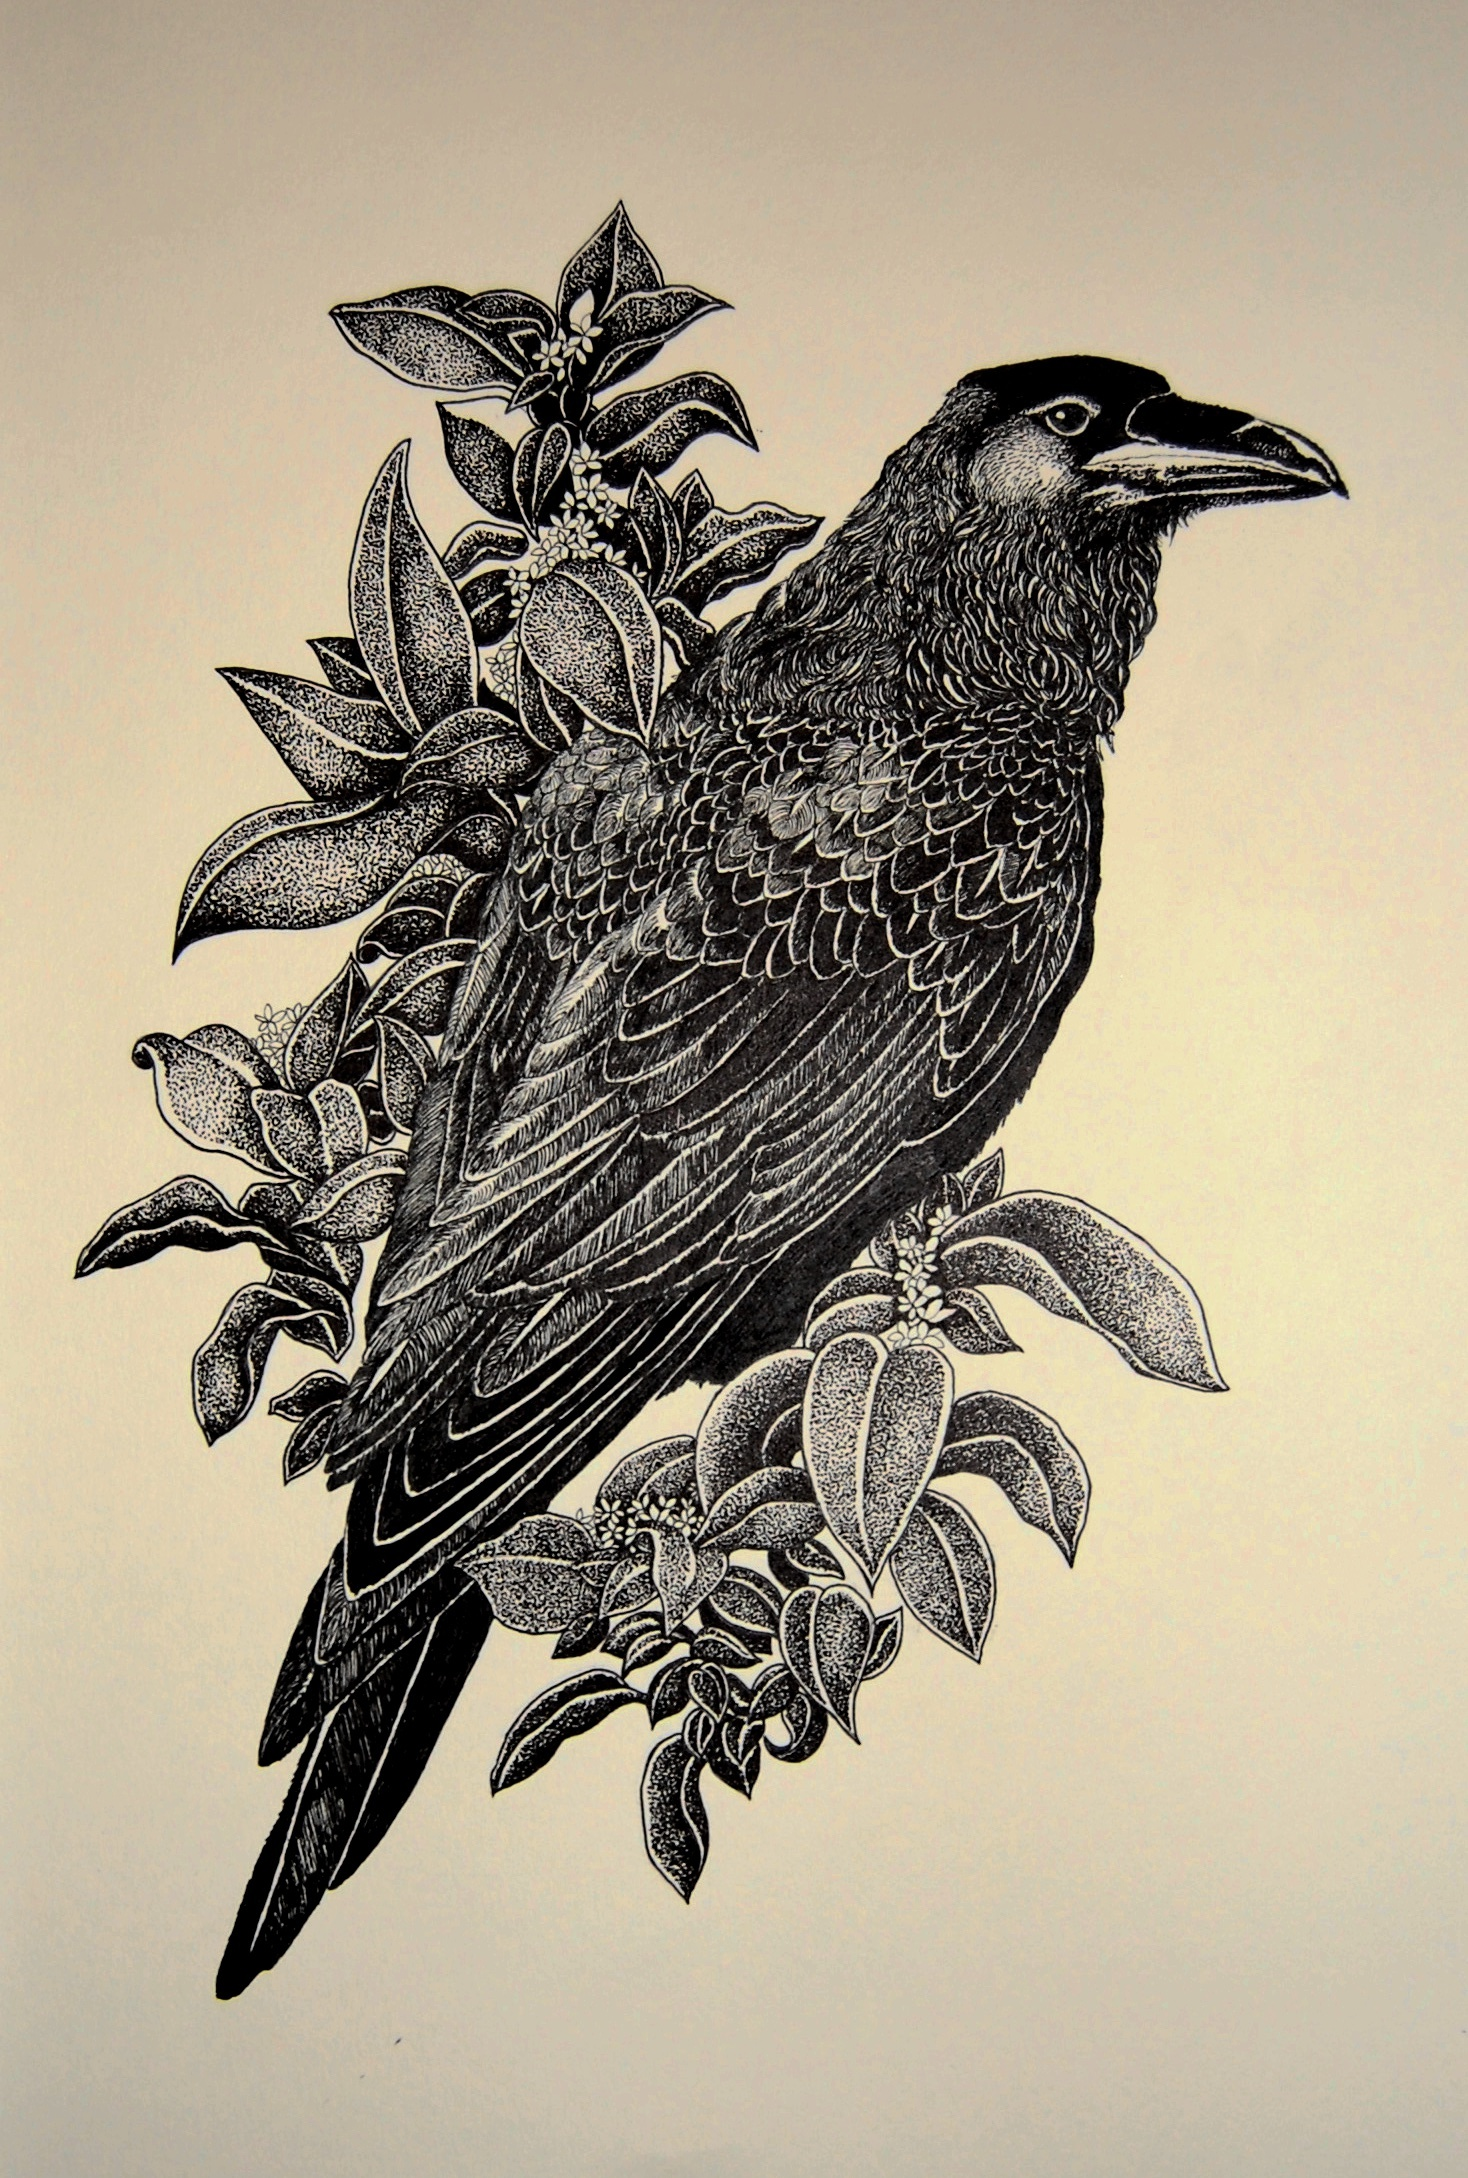 Glad black-and-white raven surrounded with flowers tattoo design